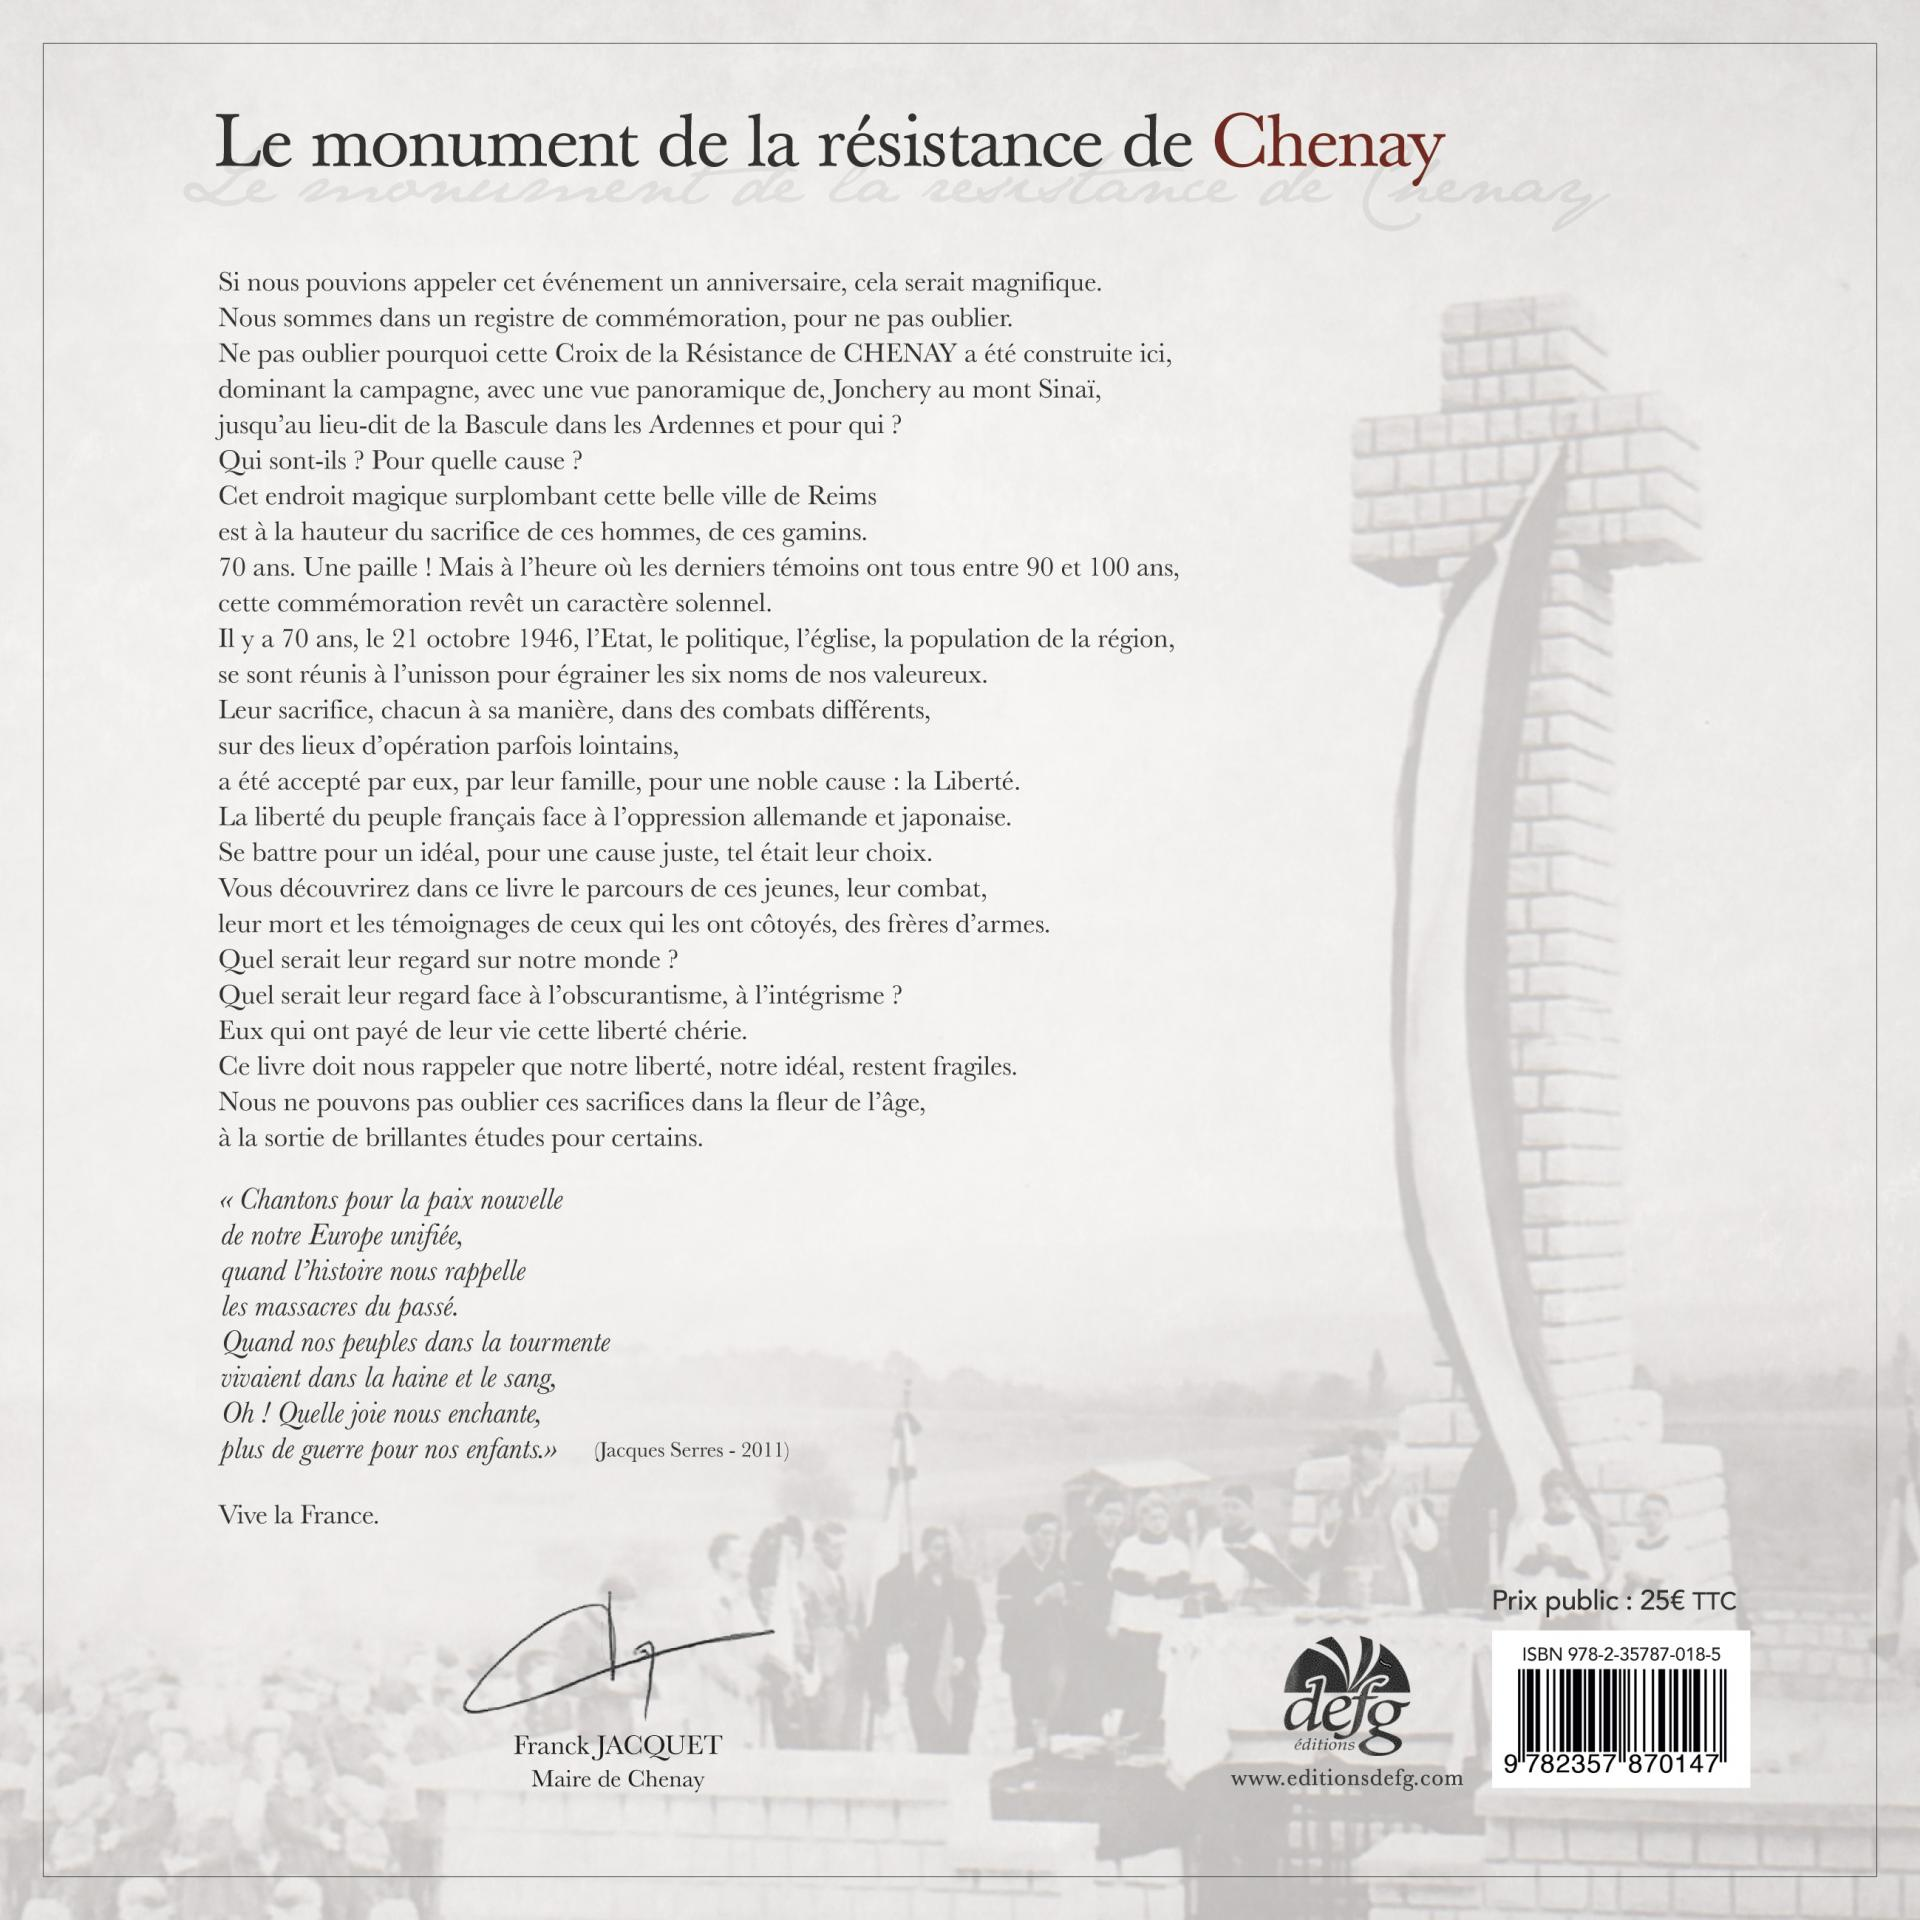 Couverture chenay verso